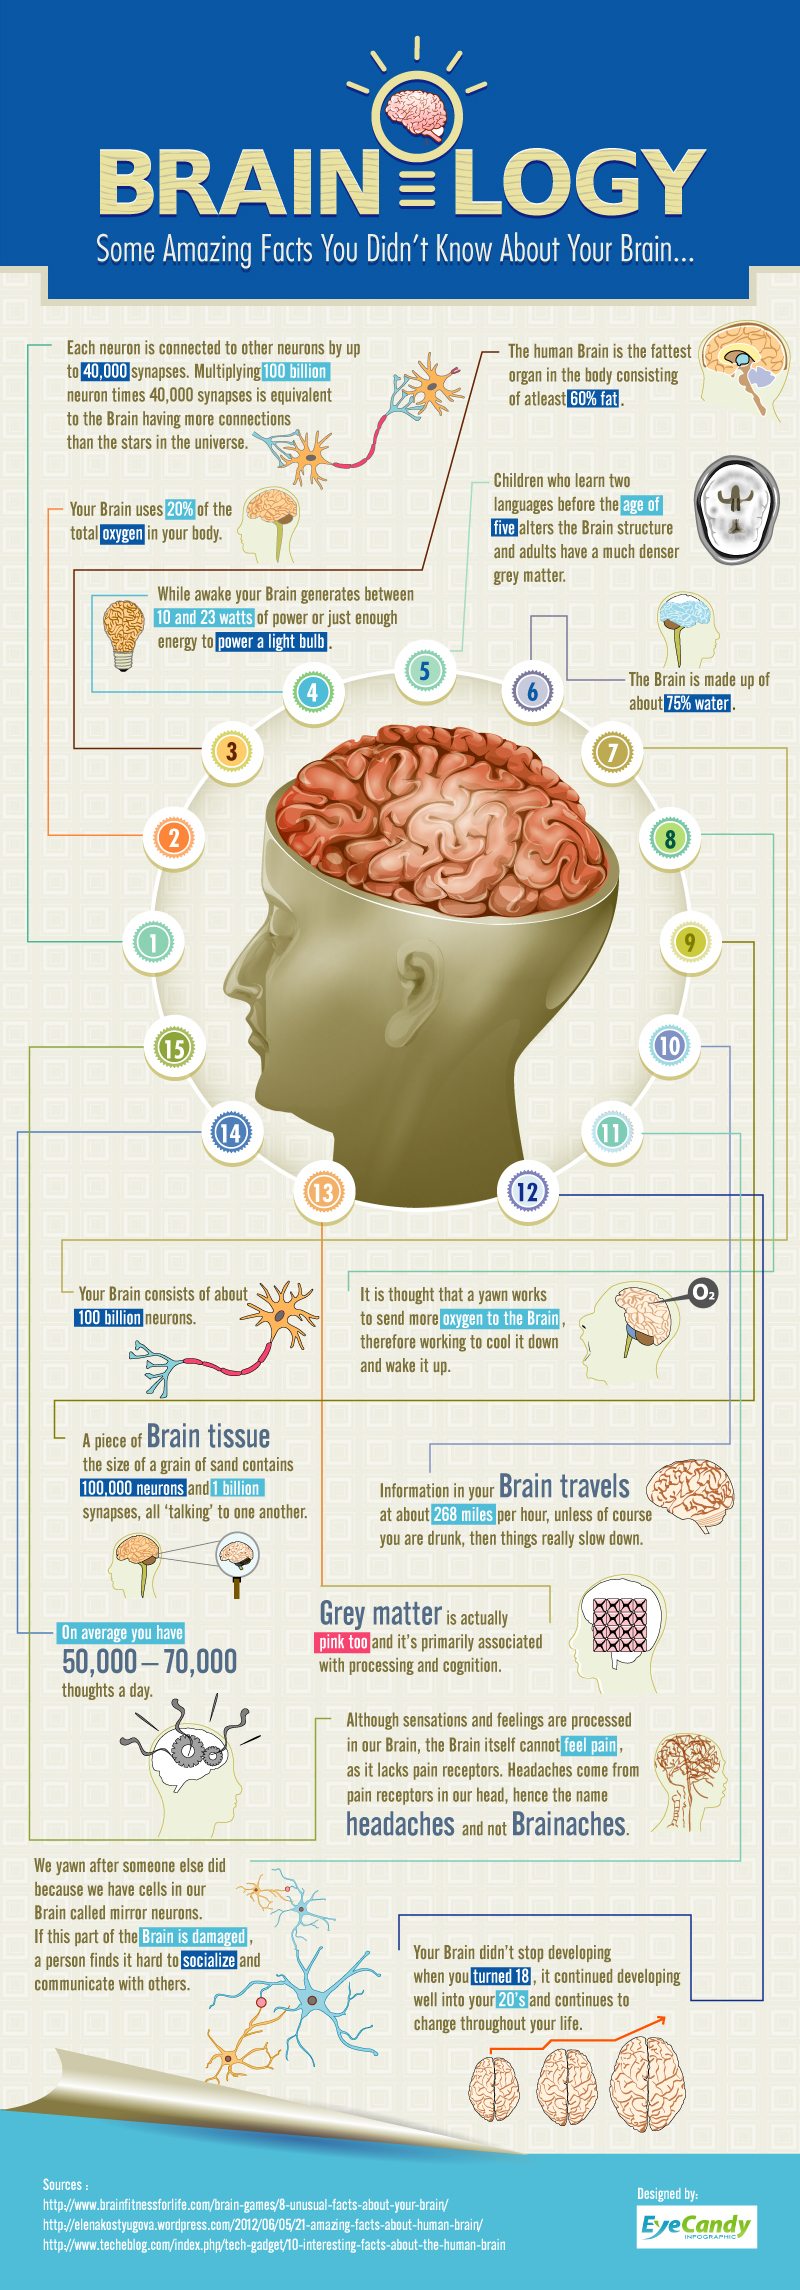 Brainology - some amazing facts you did not know about your brain